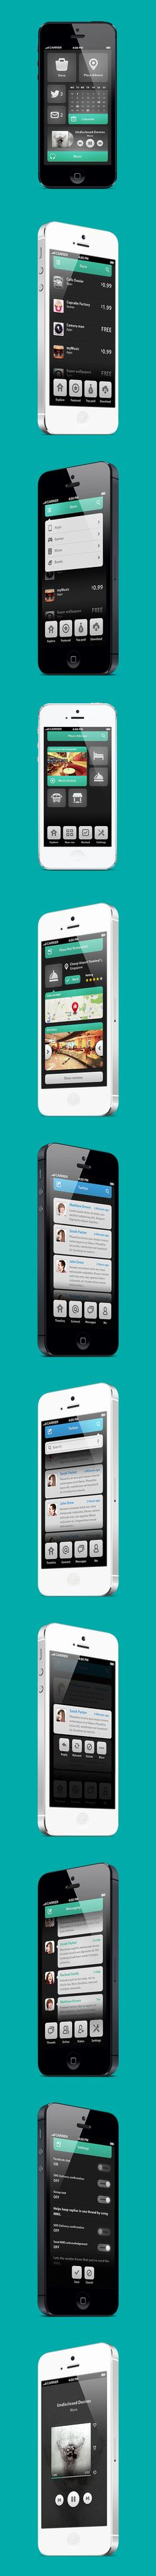 "Phone UI Retina - Natalie, via Behance *** "" The wonderful Design is what a user. Iphone Design, Web Ui Design, Graphic Design, News Web Design, Mobile Web Design, Interface Design, User Interface, App Design Inspiration, Ui Web"